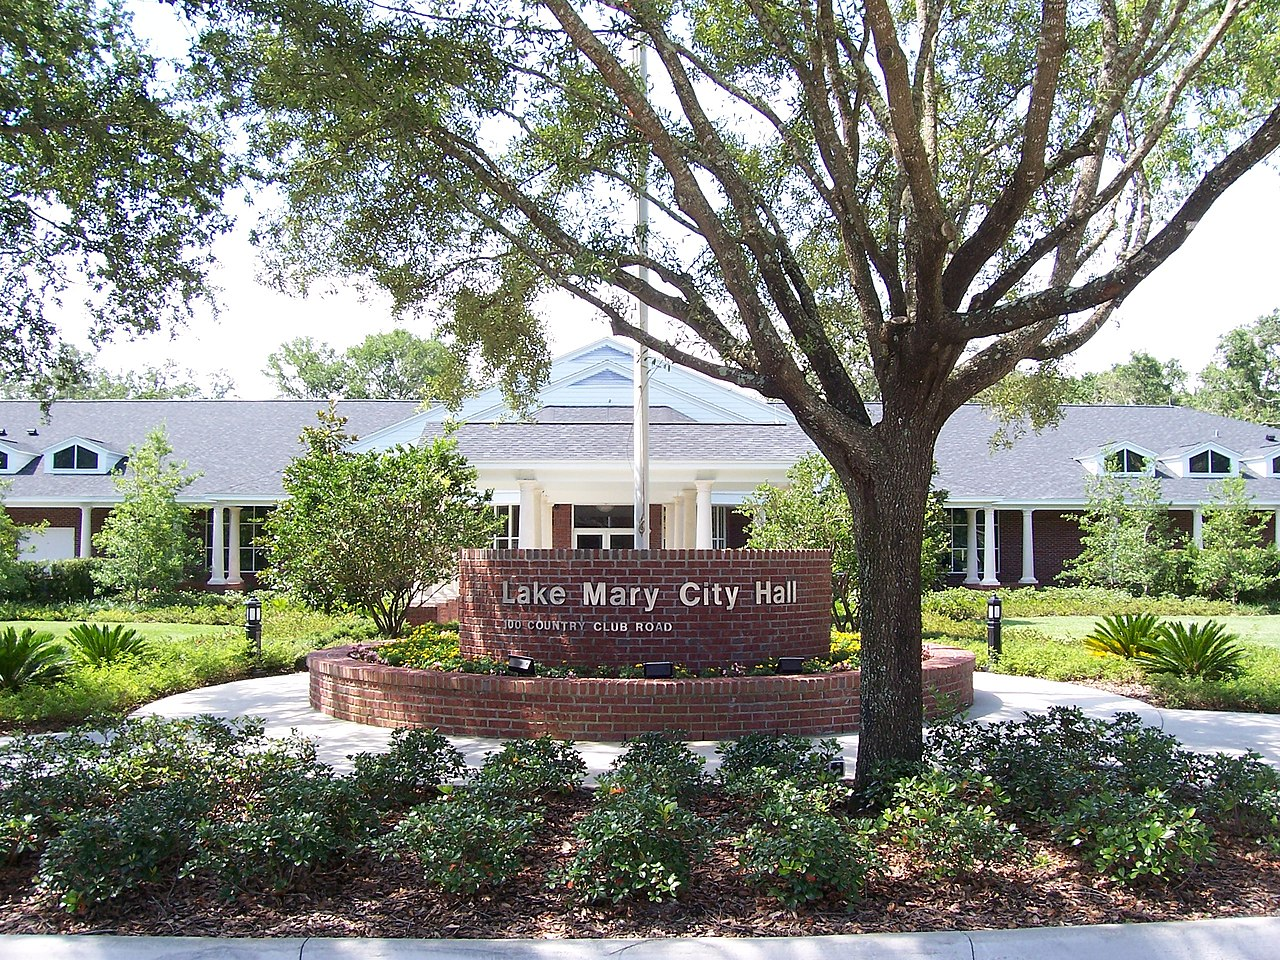 Lake Mary City Hall Lake Mary, Florida, USA